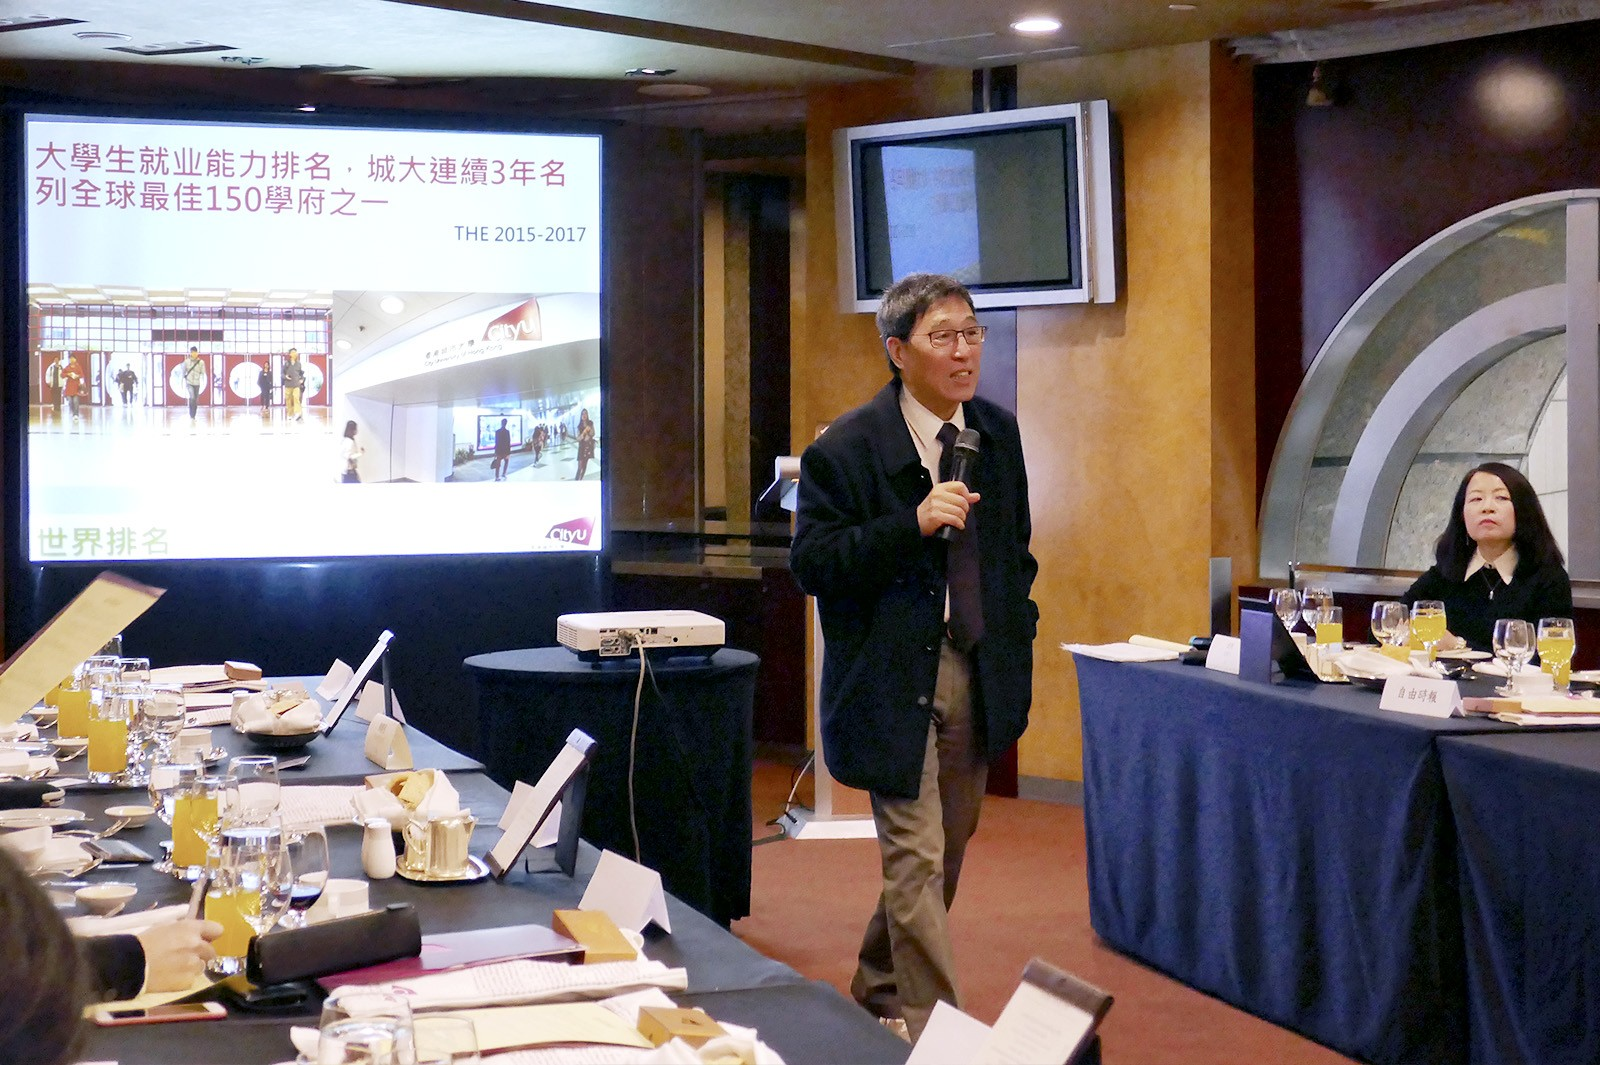 Professor Kuo introduces CityU's latest development to media representatives in Taiwan.